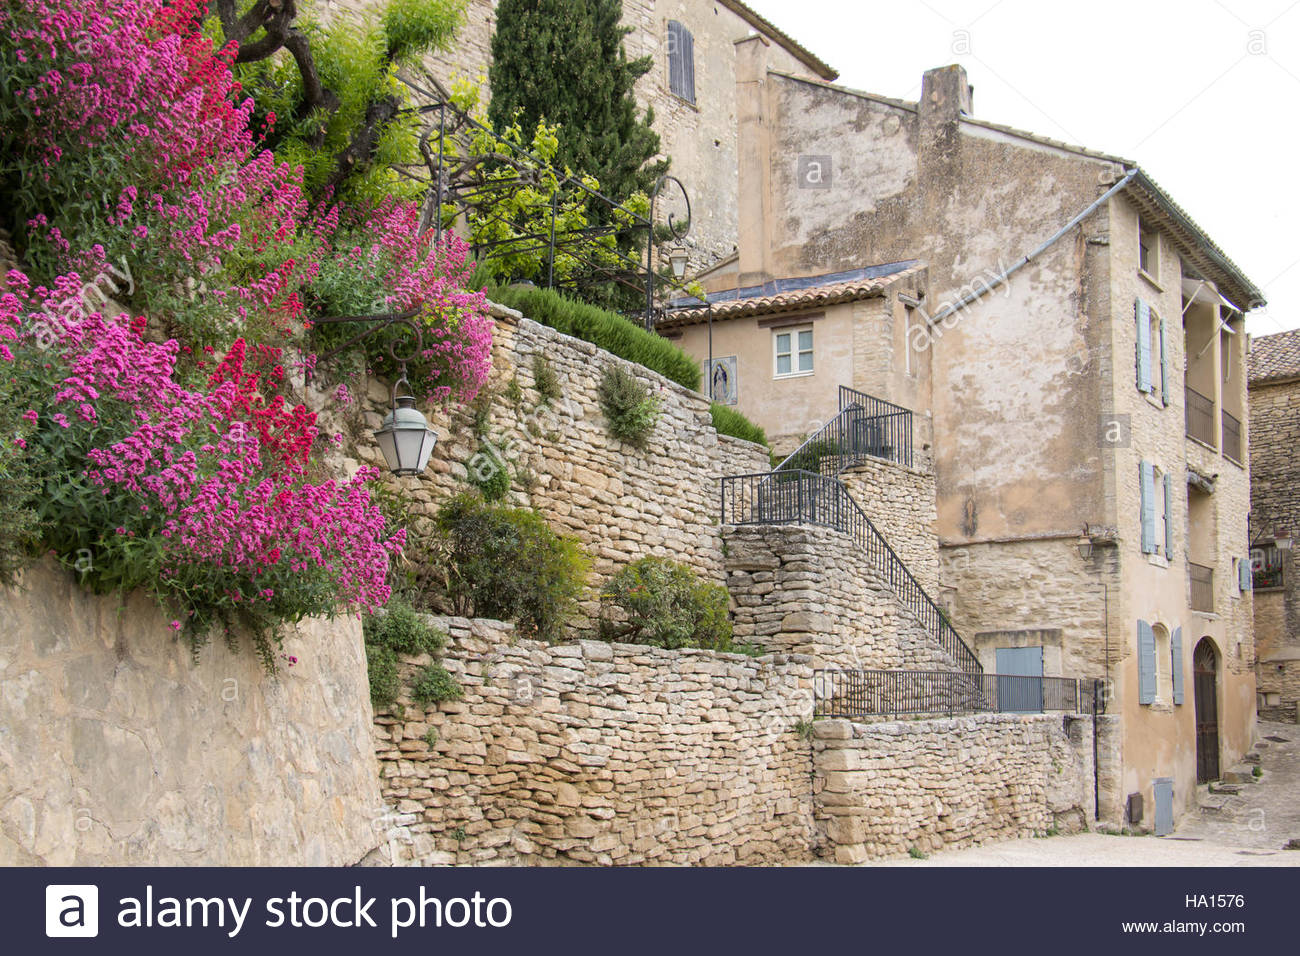 Medieval Village of Gordes Vaucluse Luberon , France Provence, old architecture, stone buildings, travel destination - Stock Image